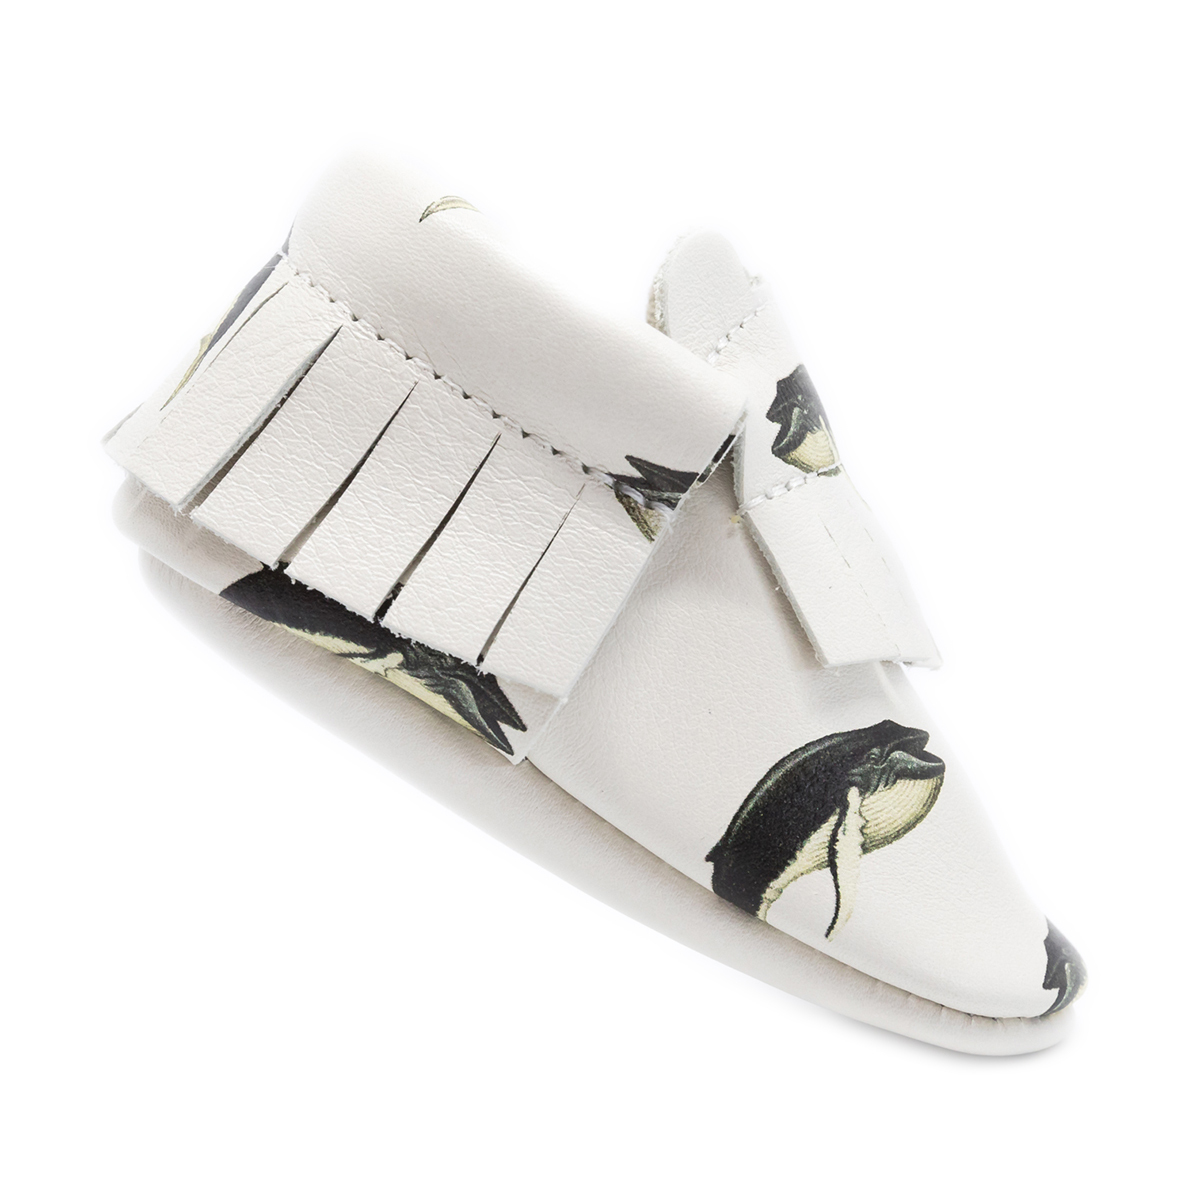 Chaussons & Chaussures Chaussons Megaptera - 21/22 Chaussons Megaptera - 21/22